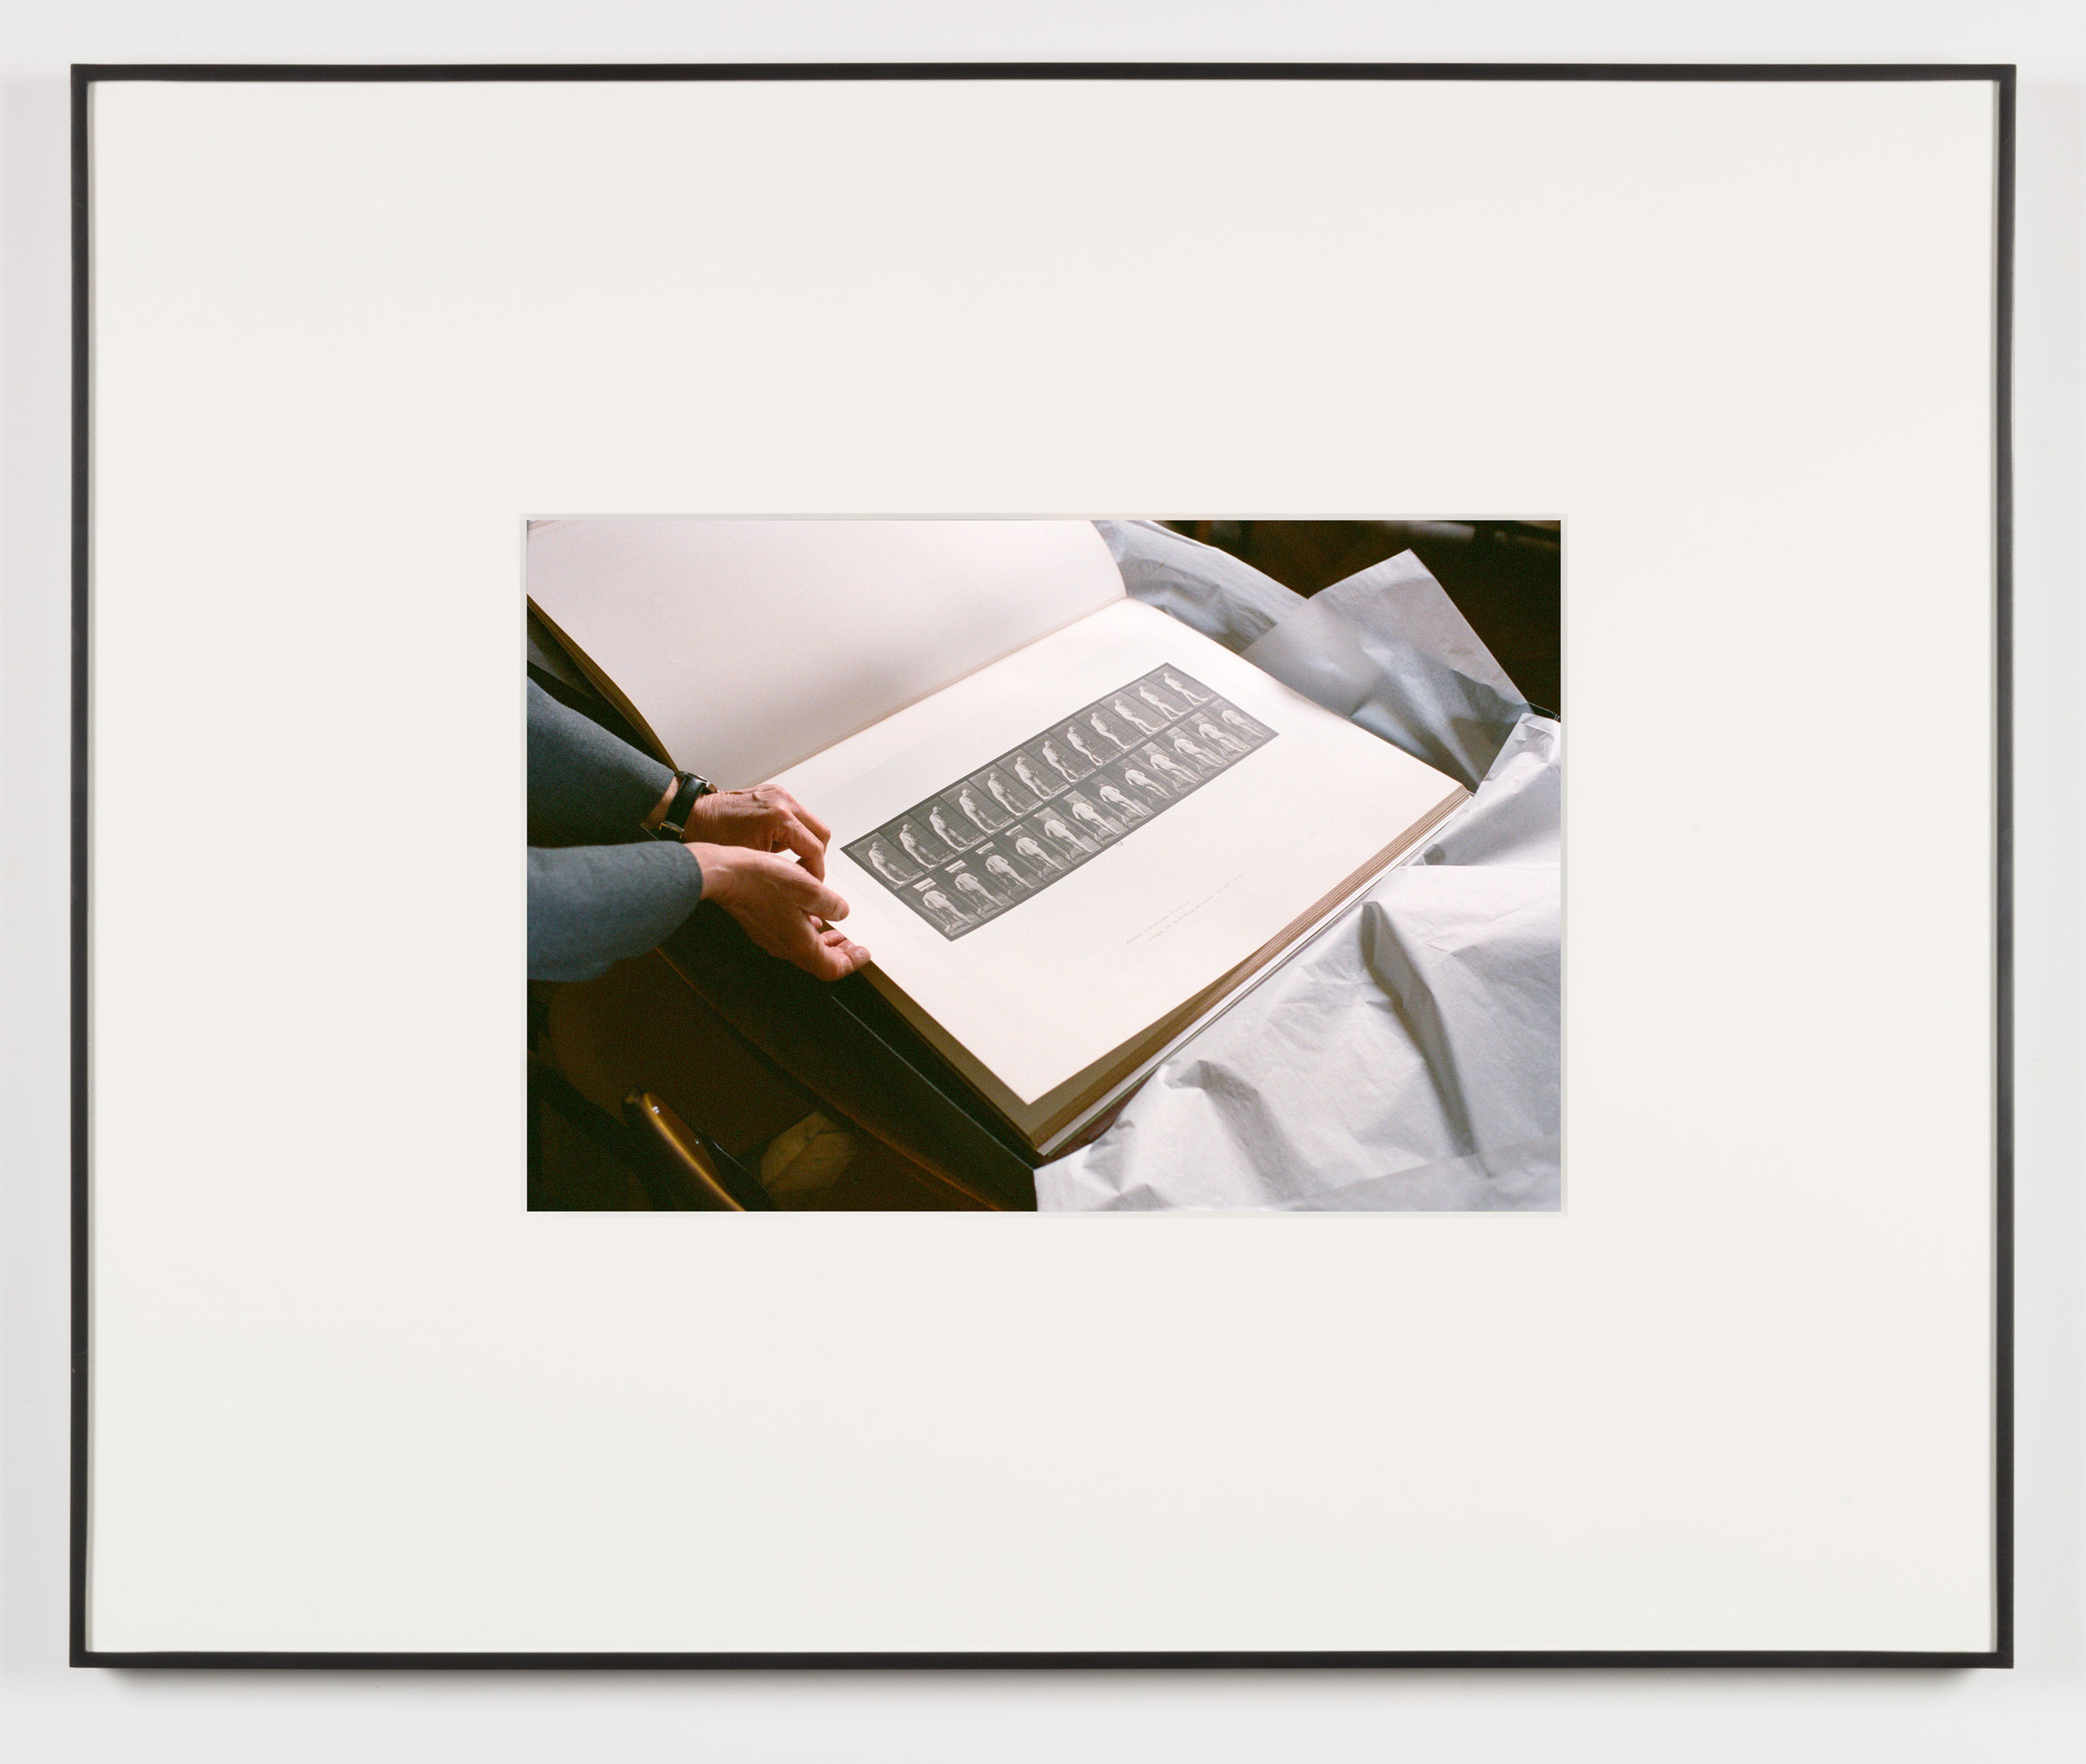 Der Herrscher (Paris, France, March 12, 2013)    2014   Chromogenic print  13 1/2 x 20 inches   Art Handling, 2011–